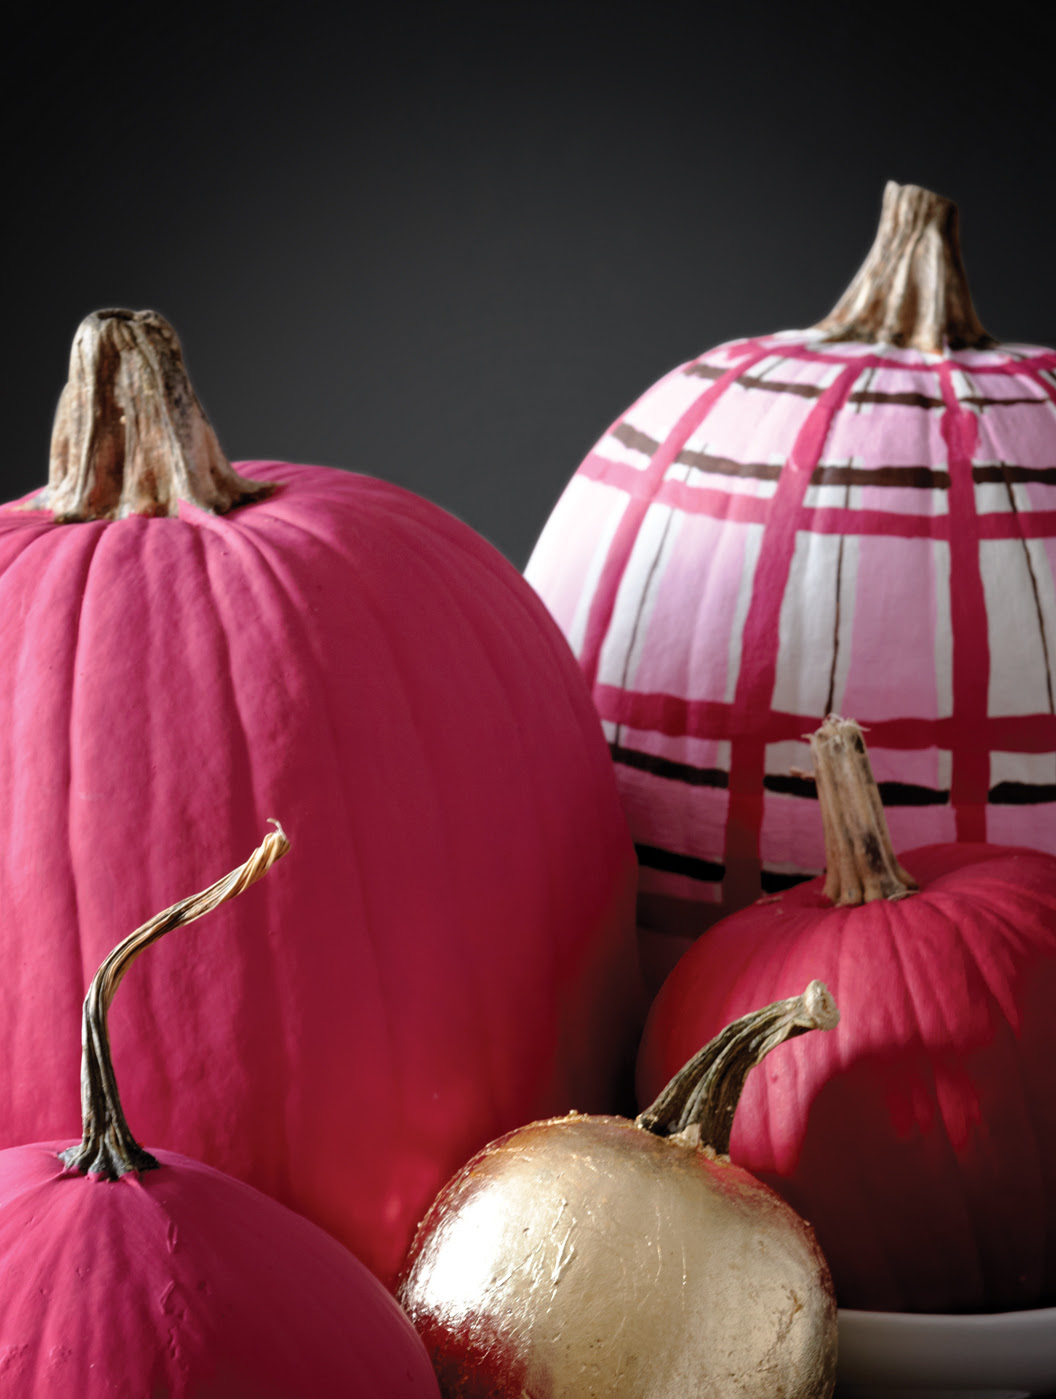 Pink painted pumpkins, plaid pumpkins